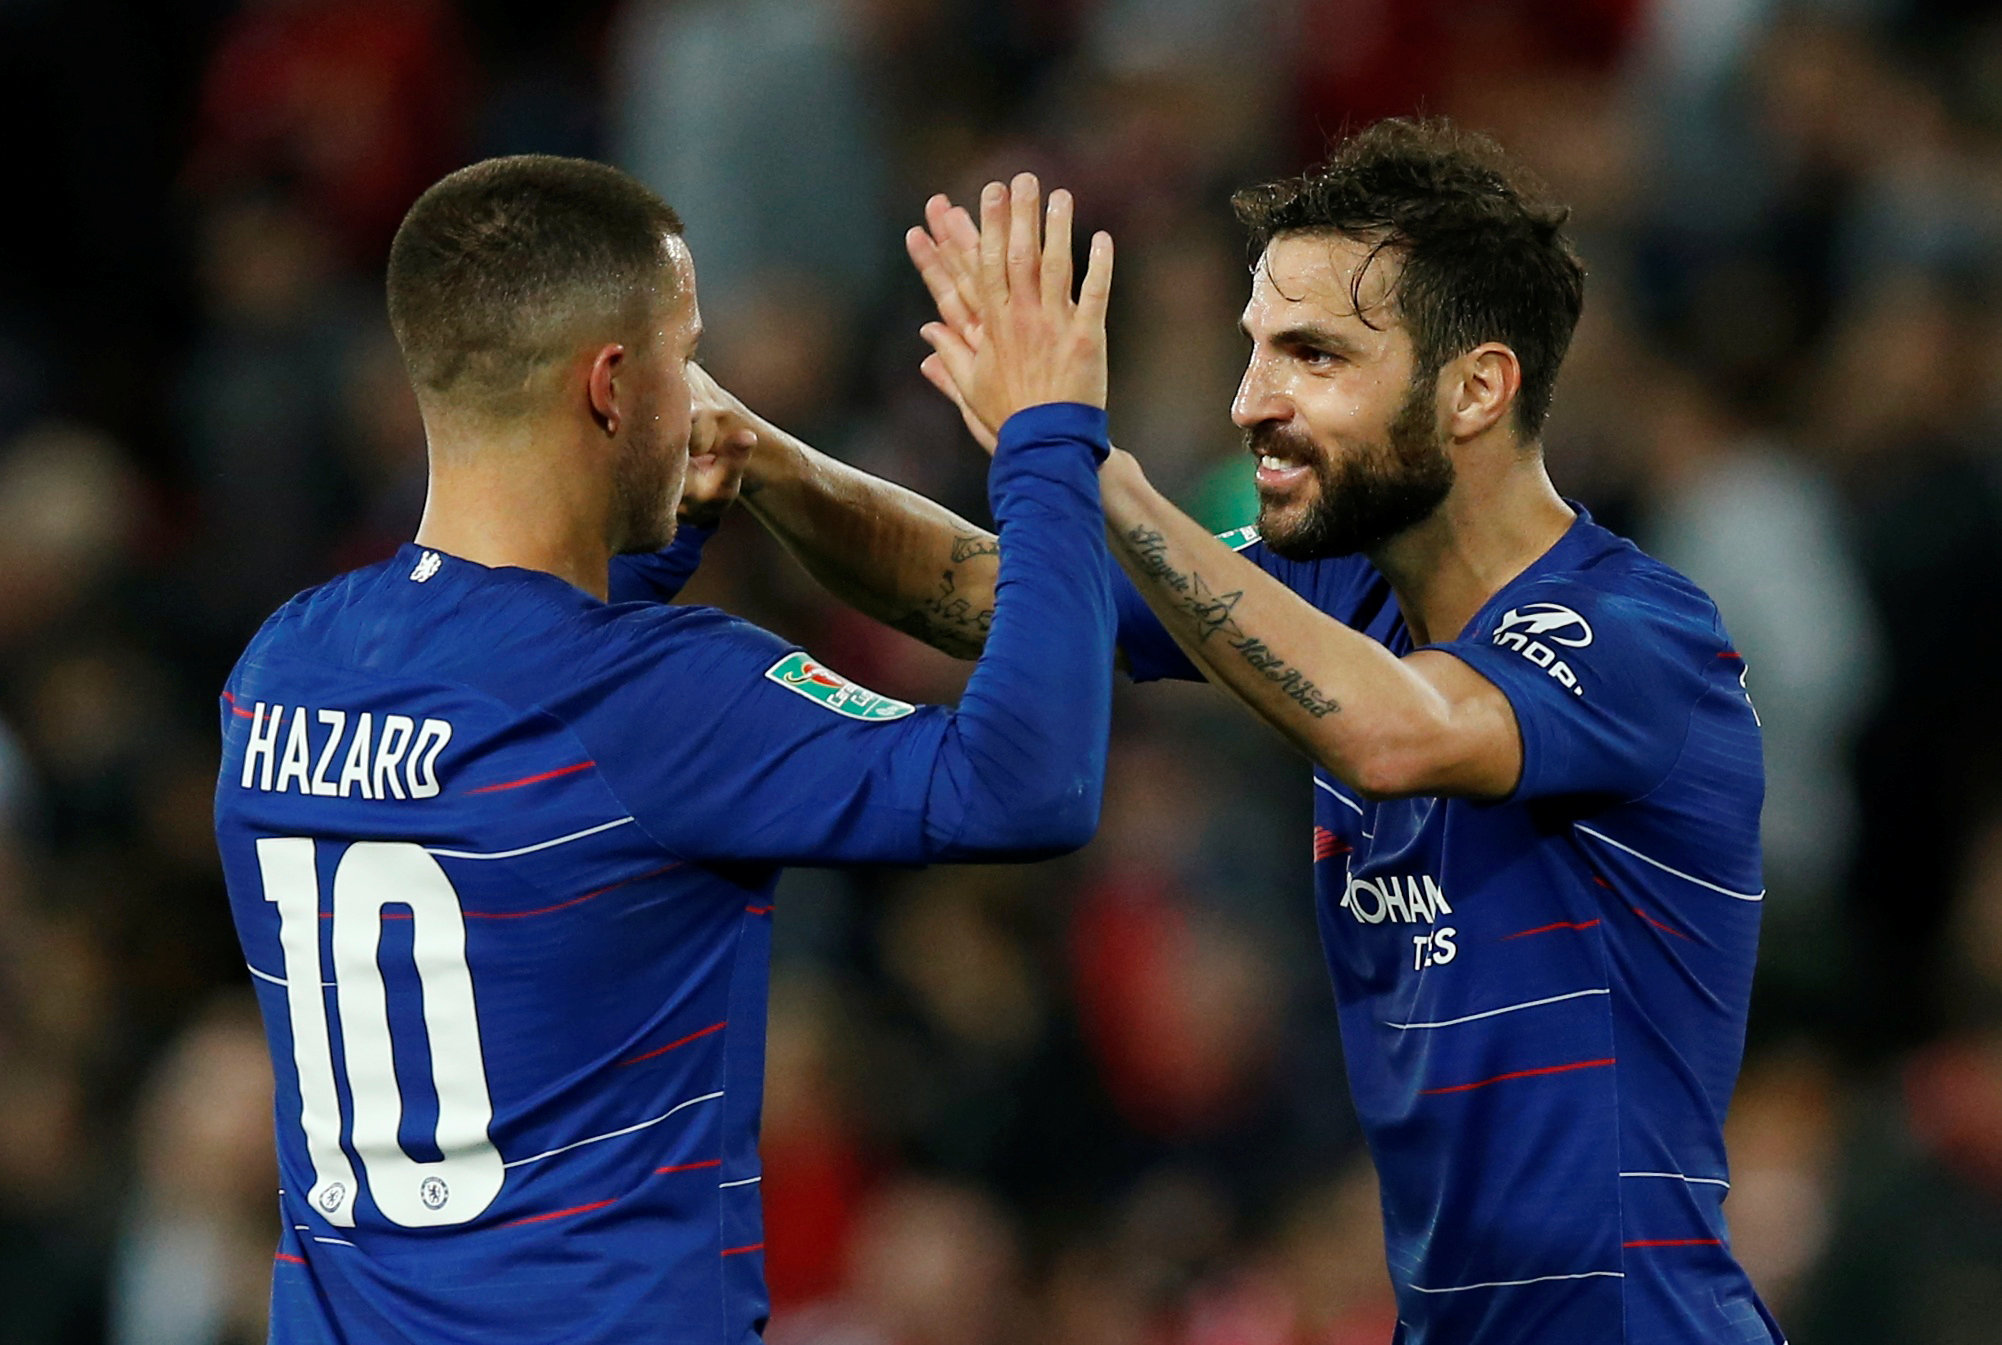 Magnificent Hazard ends Liverpool's 100 percent start - Middle East